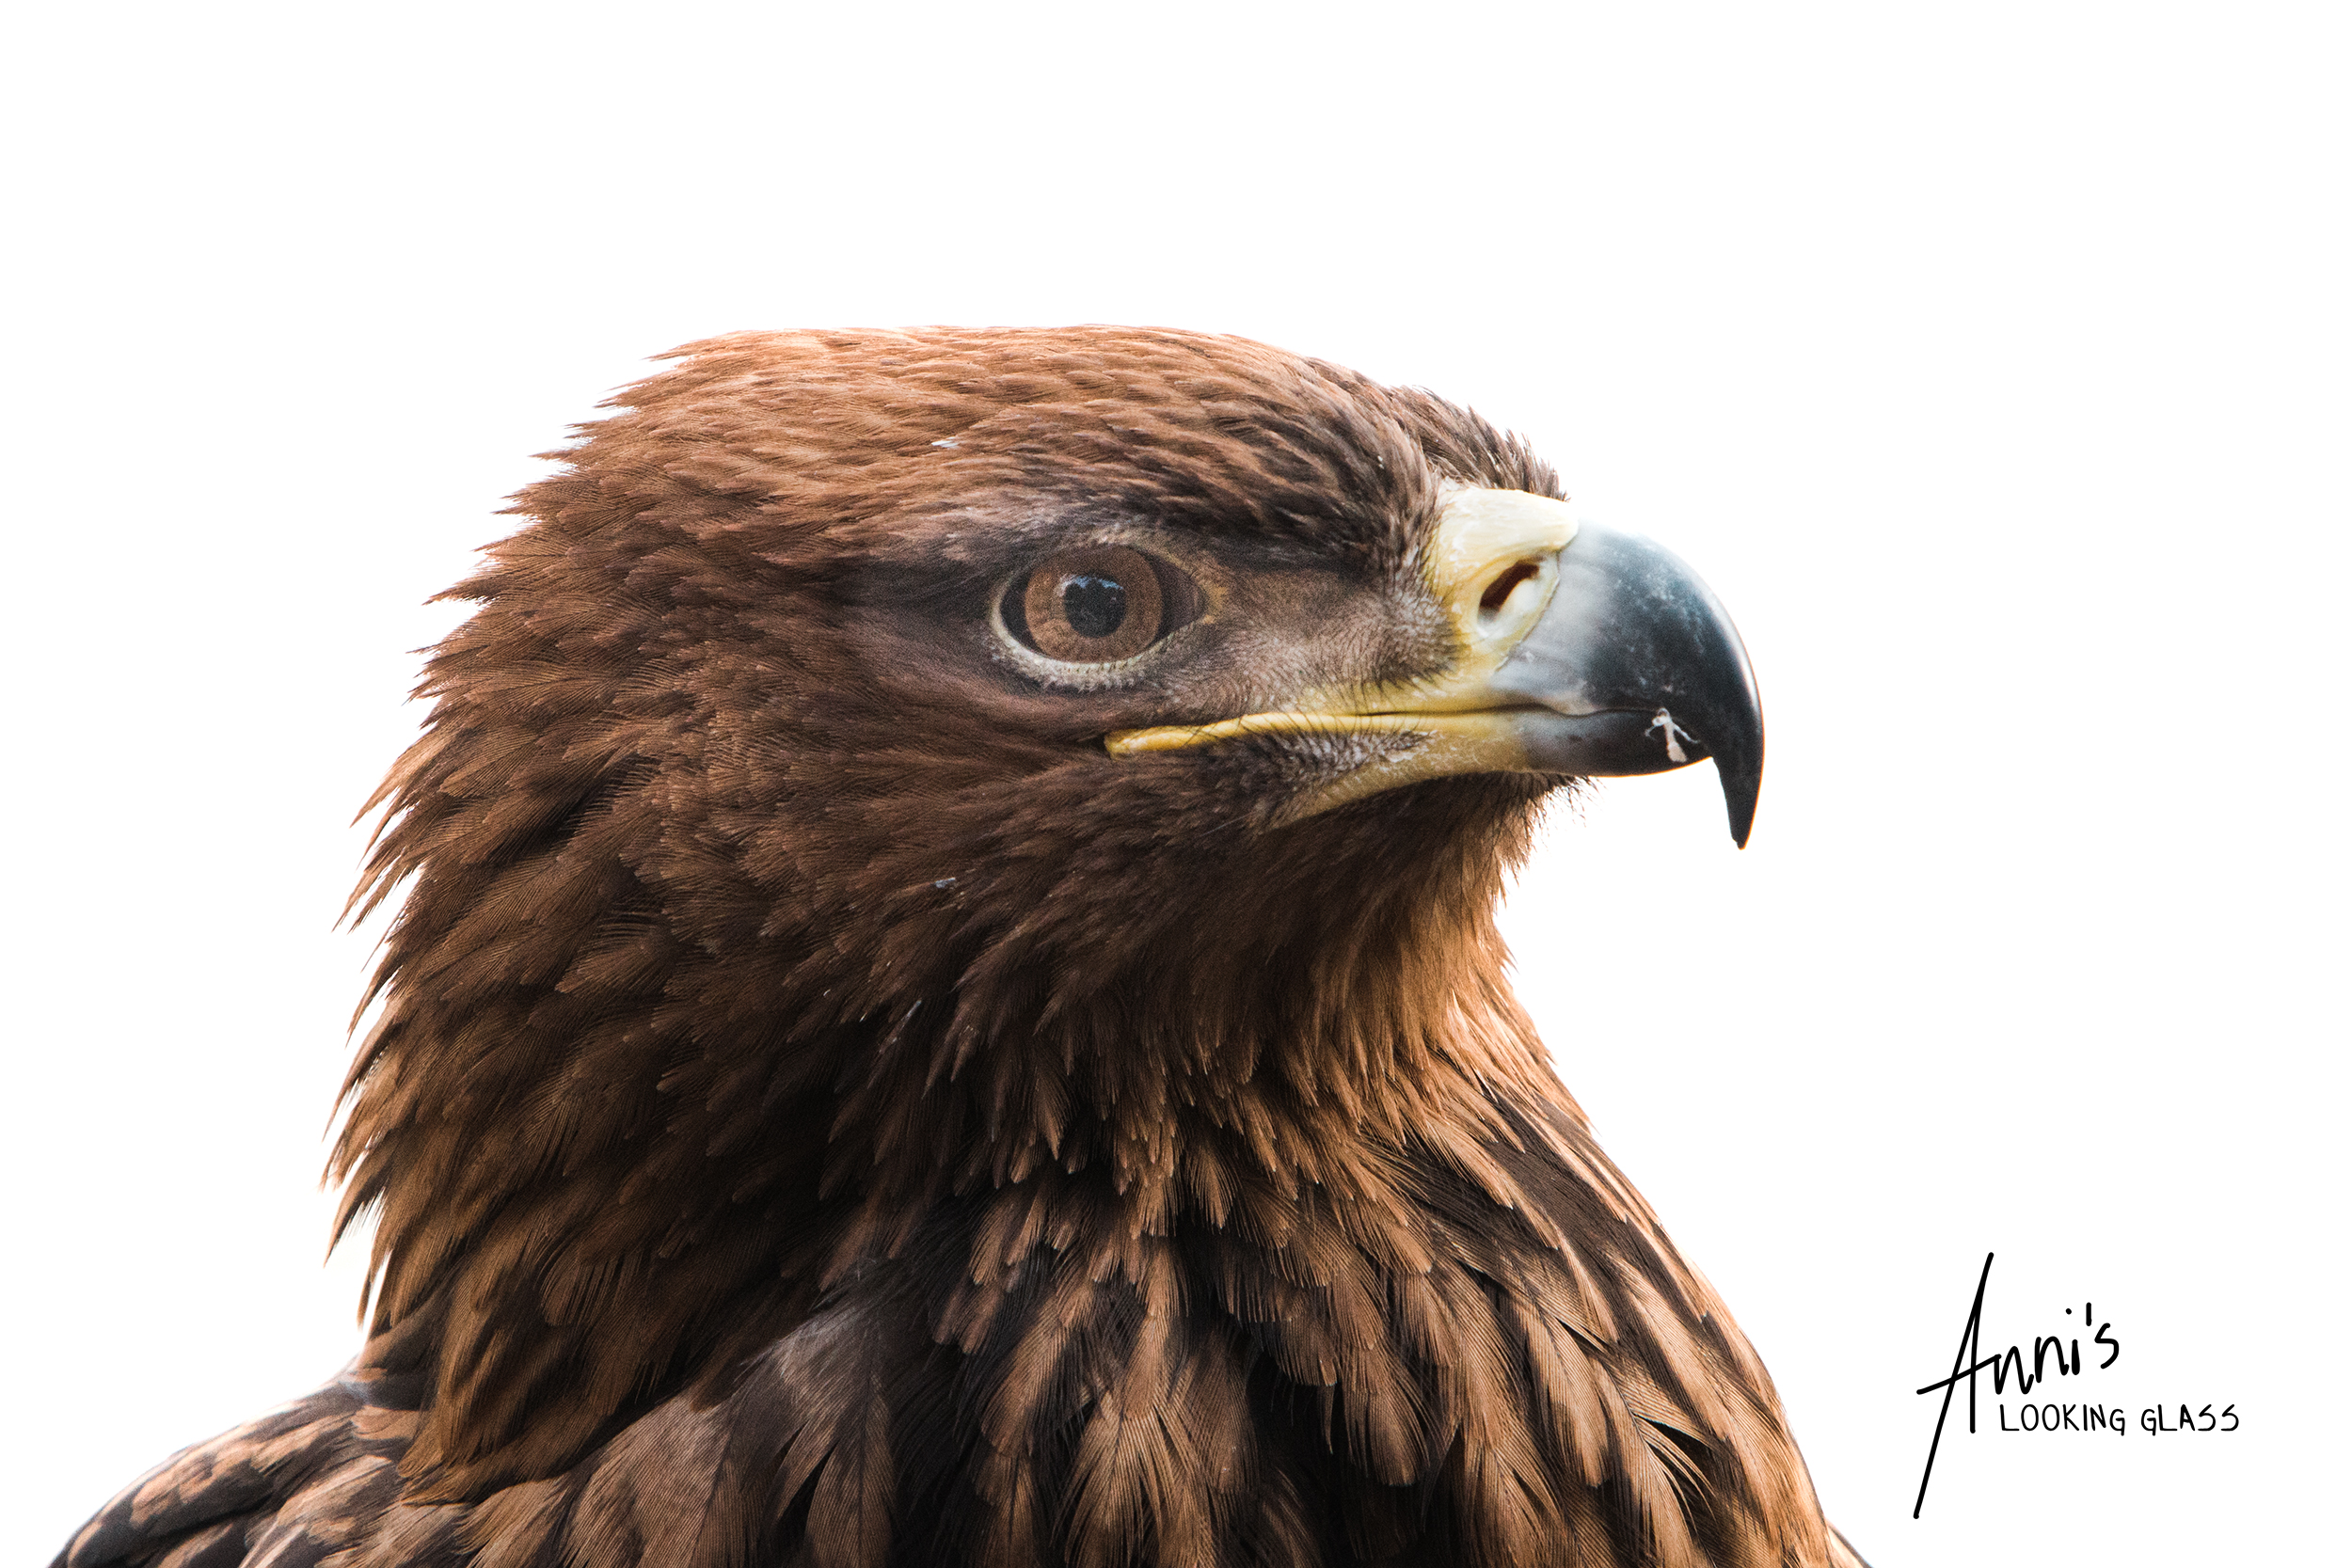 5 - Thor in high-key: Photographing eagles was a truly unique experience.